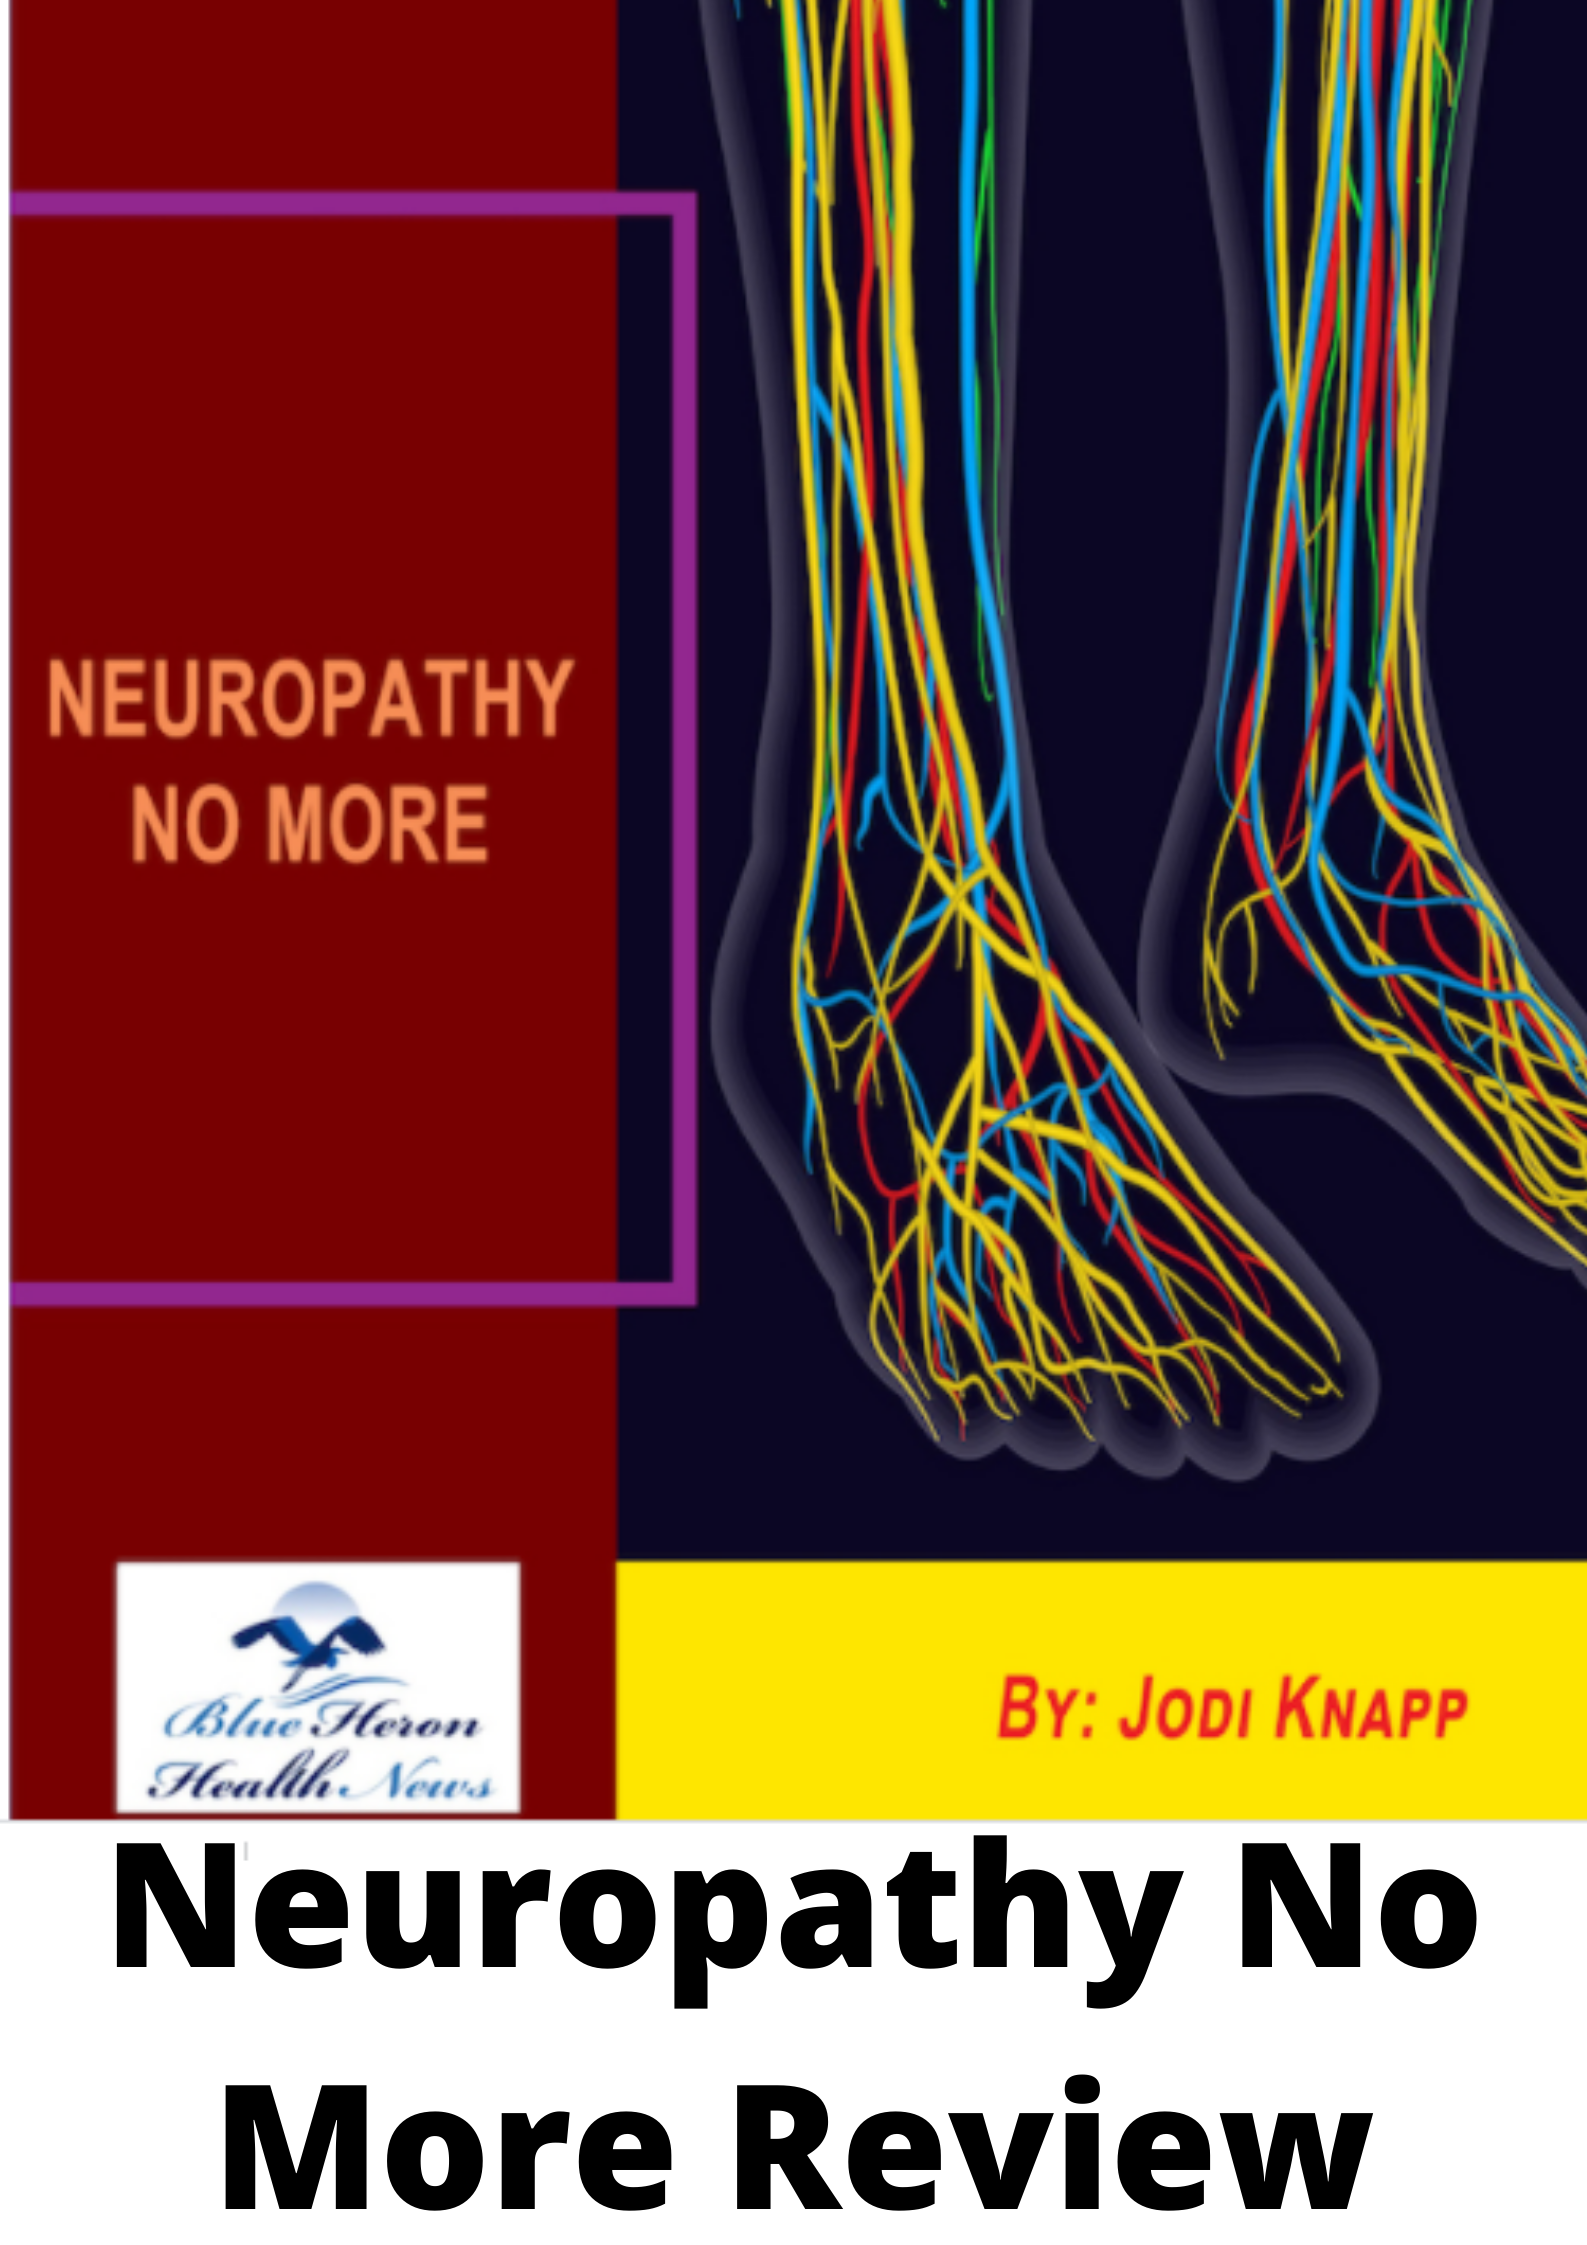 Neuropathy No More Review-Scam or legit?